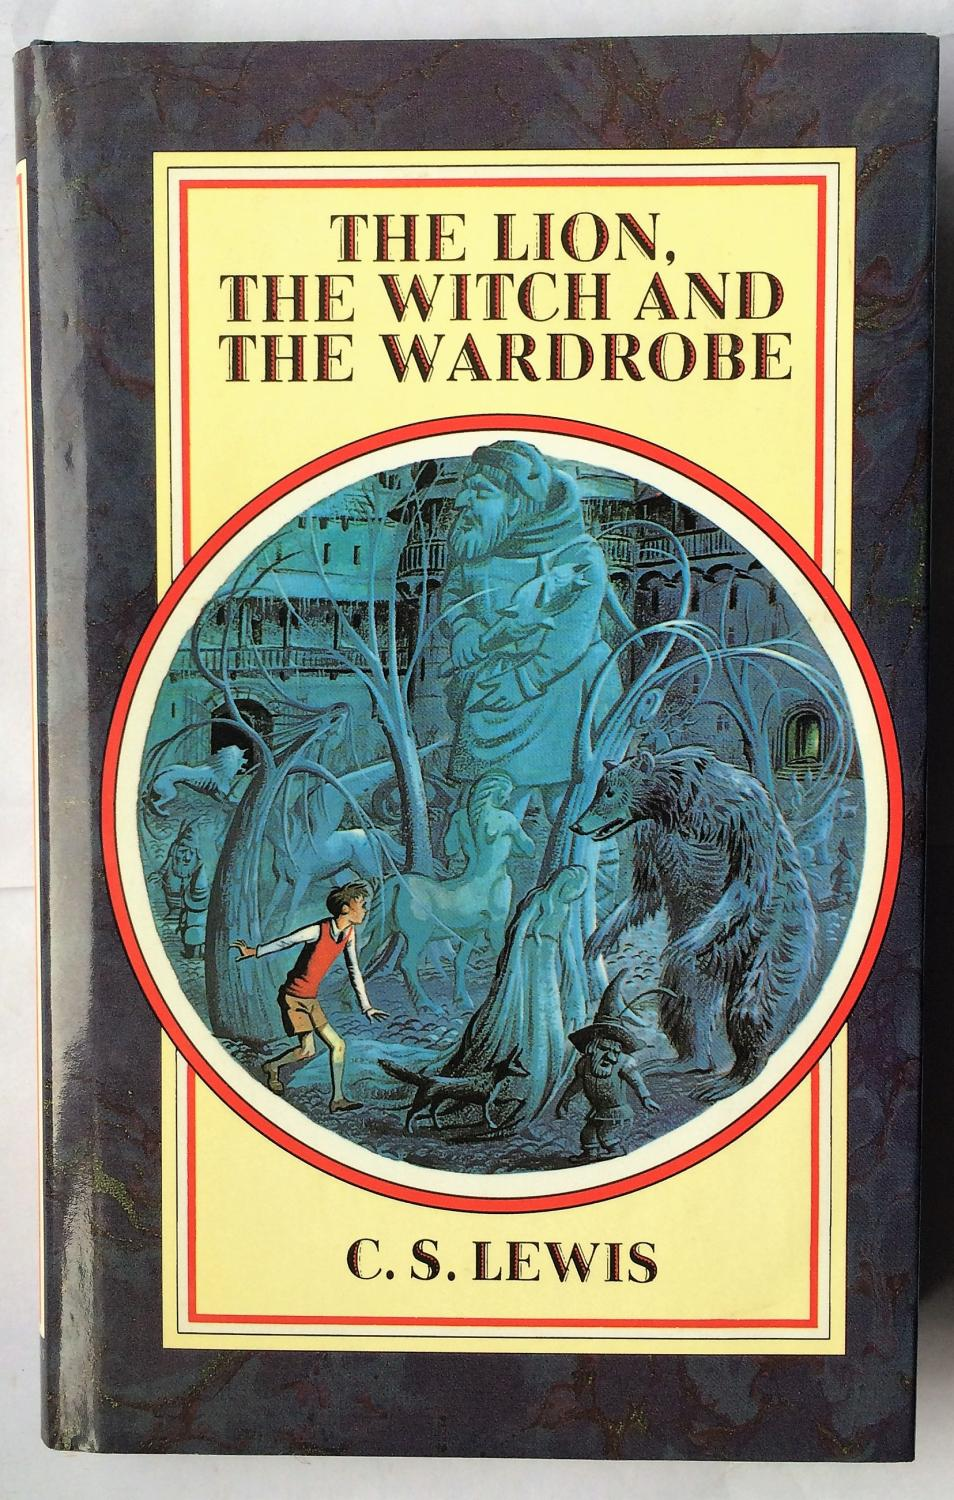 the lion the witch and the wardrobe by lewis c s illustrated by the lion the witch and the wardrobe by lewis c s illustrated by pauline baynes abebooks